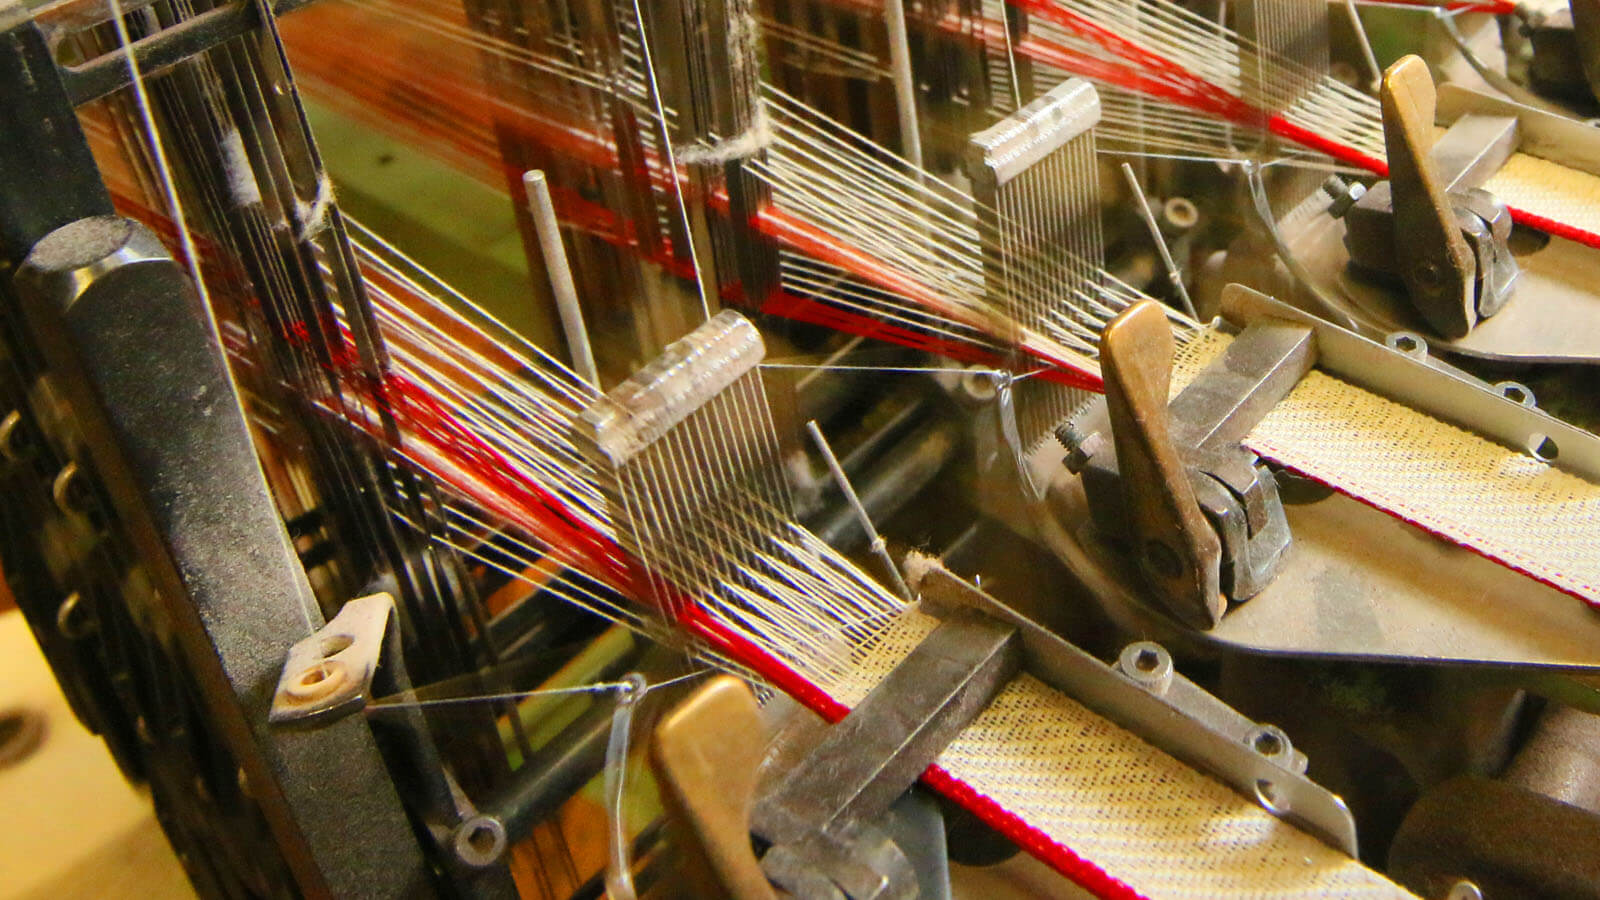 Close-up of fabric being woven by an industrial machine in a factory